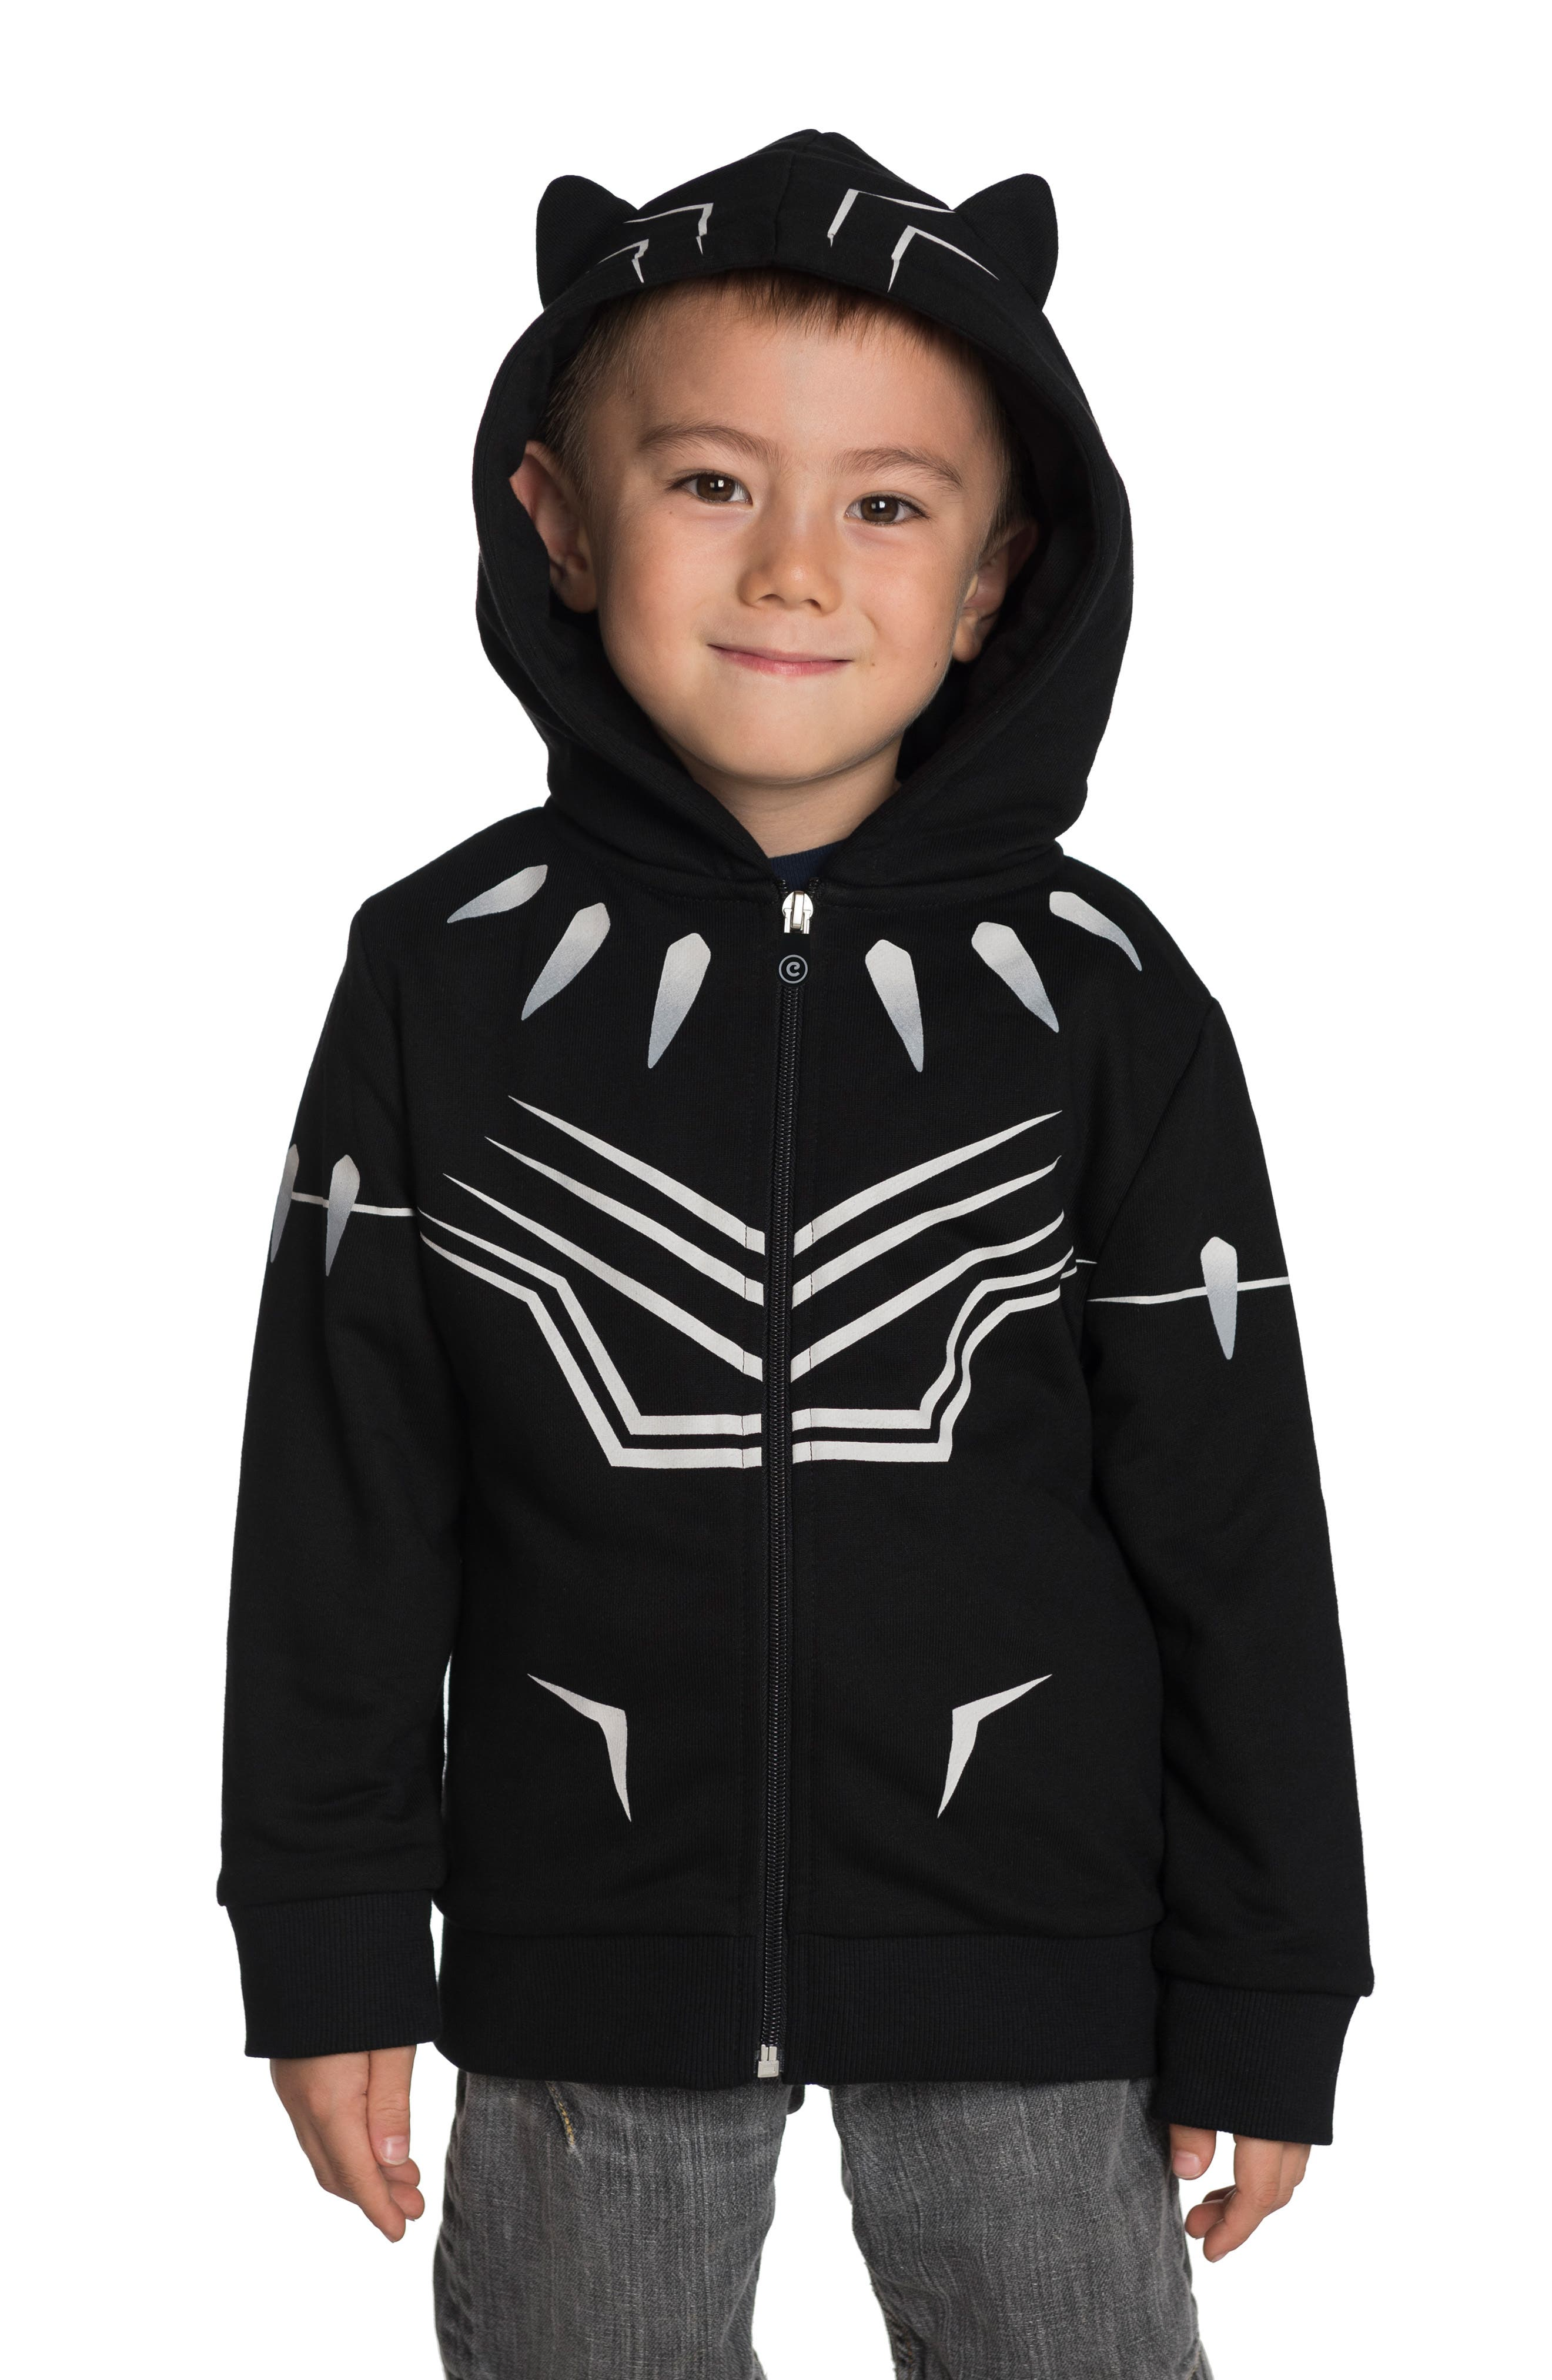 Marvel<sup>®</sup> 2018 Black Panther<sup>®</sup> 2-in-1 Stuffed Animal Hoodie,                             Alternate thumbnail 2, color,                             BLACK